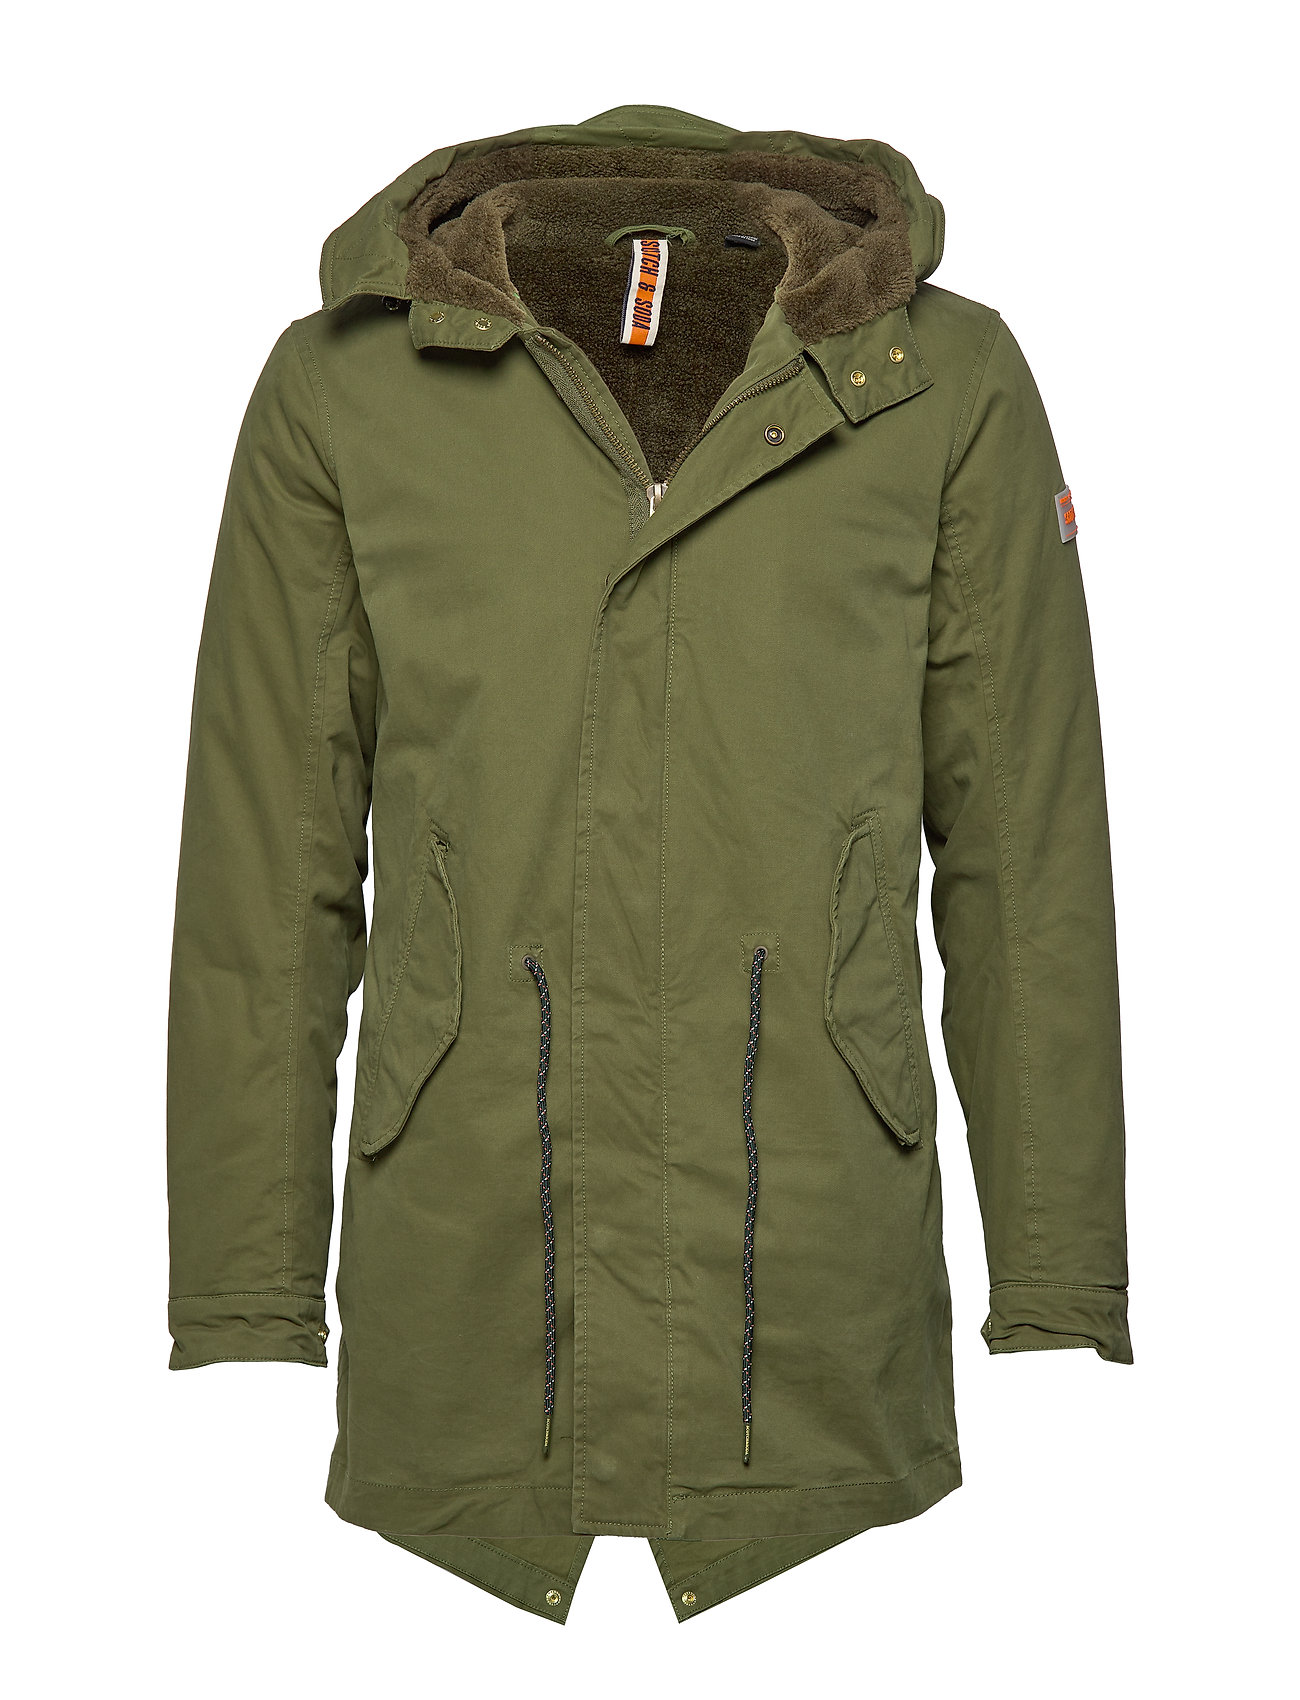 Image of Classic Hooded Parka With Teddy And Mesh Lining Parka Jakke Grøn Scotch & Soda (3252735343)